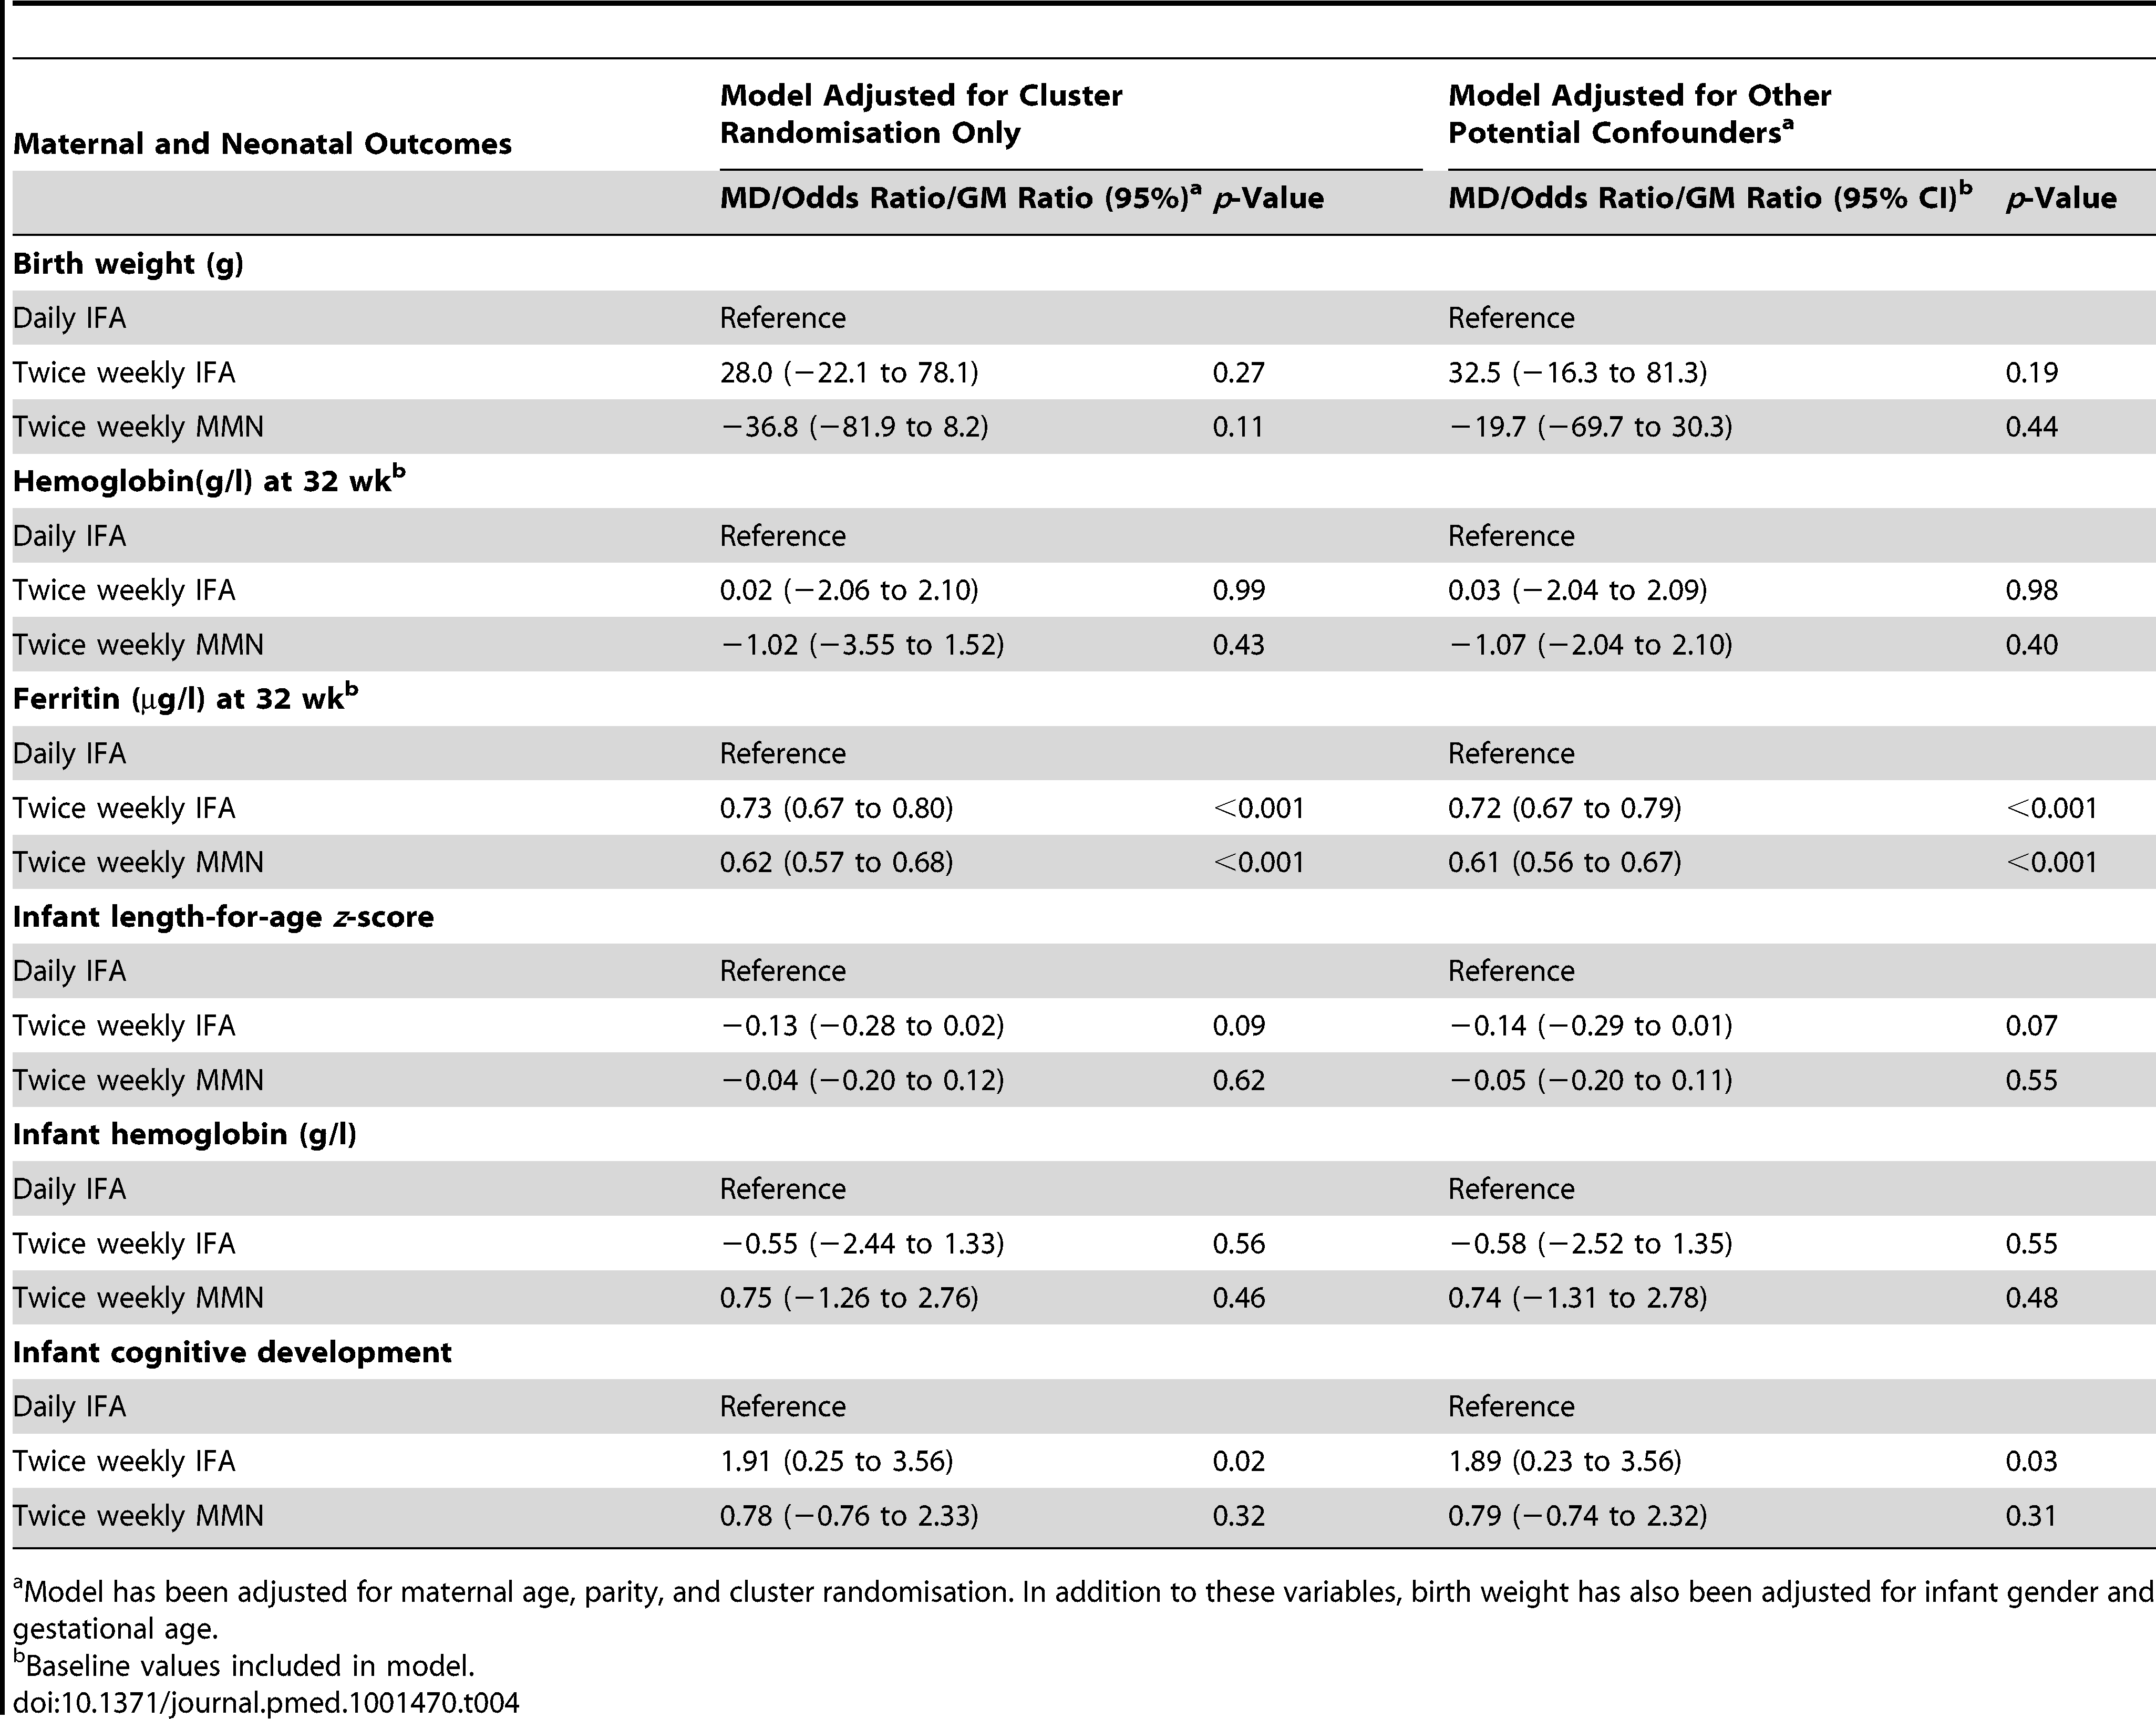 Maternal and neonatal outcomes, with mean difference or odds ratio, for comparison of the intervention groups, with and without adjustment for potential confounders.